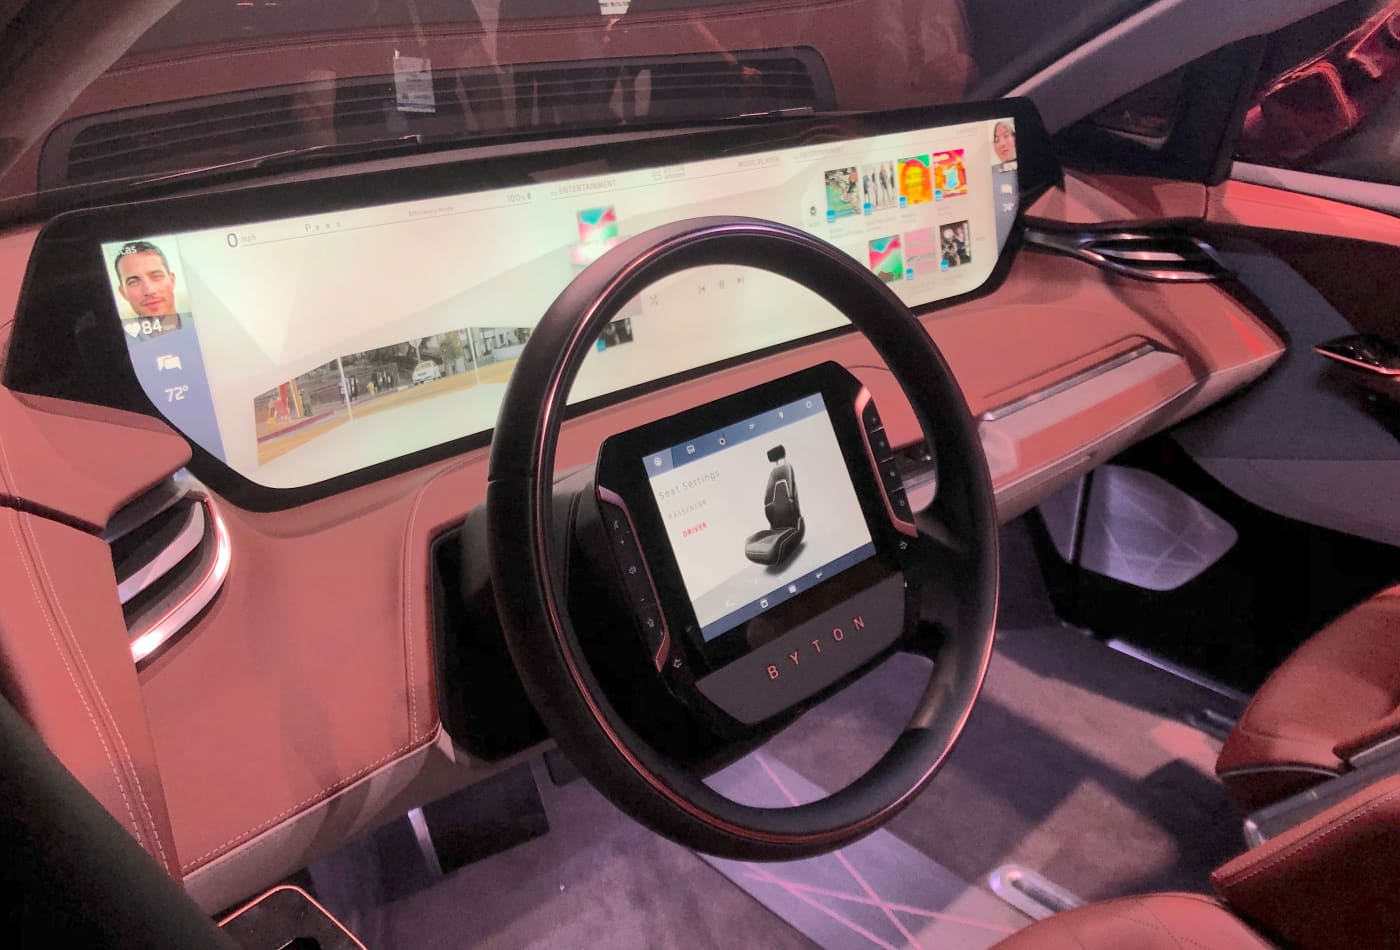 At CES 2019, self-driving cars with VR and facial recognition